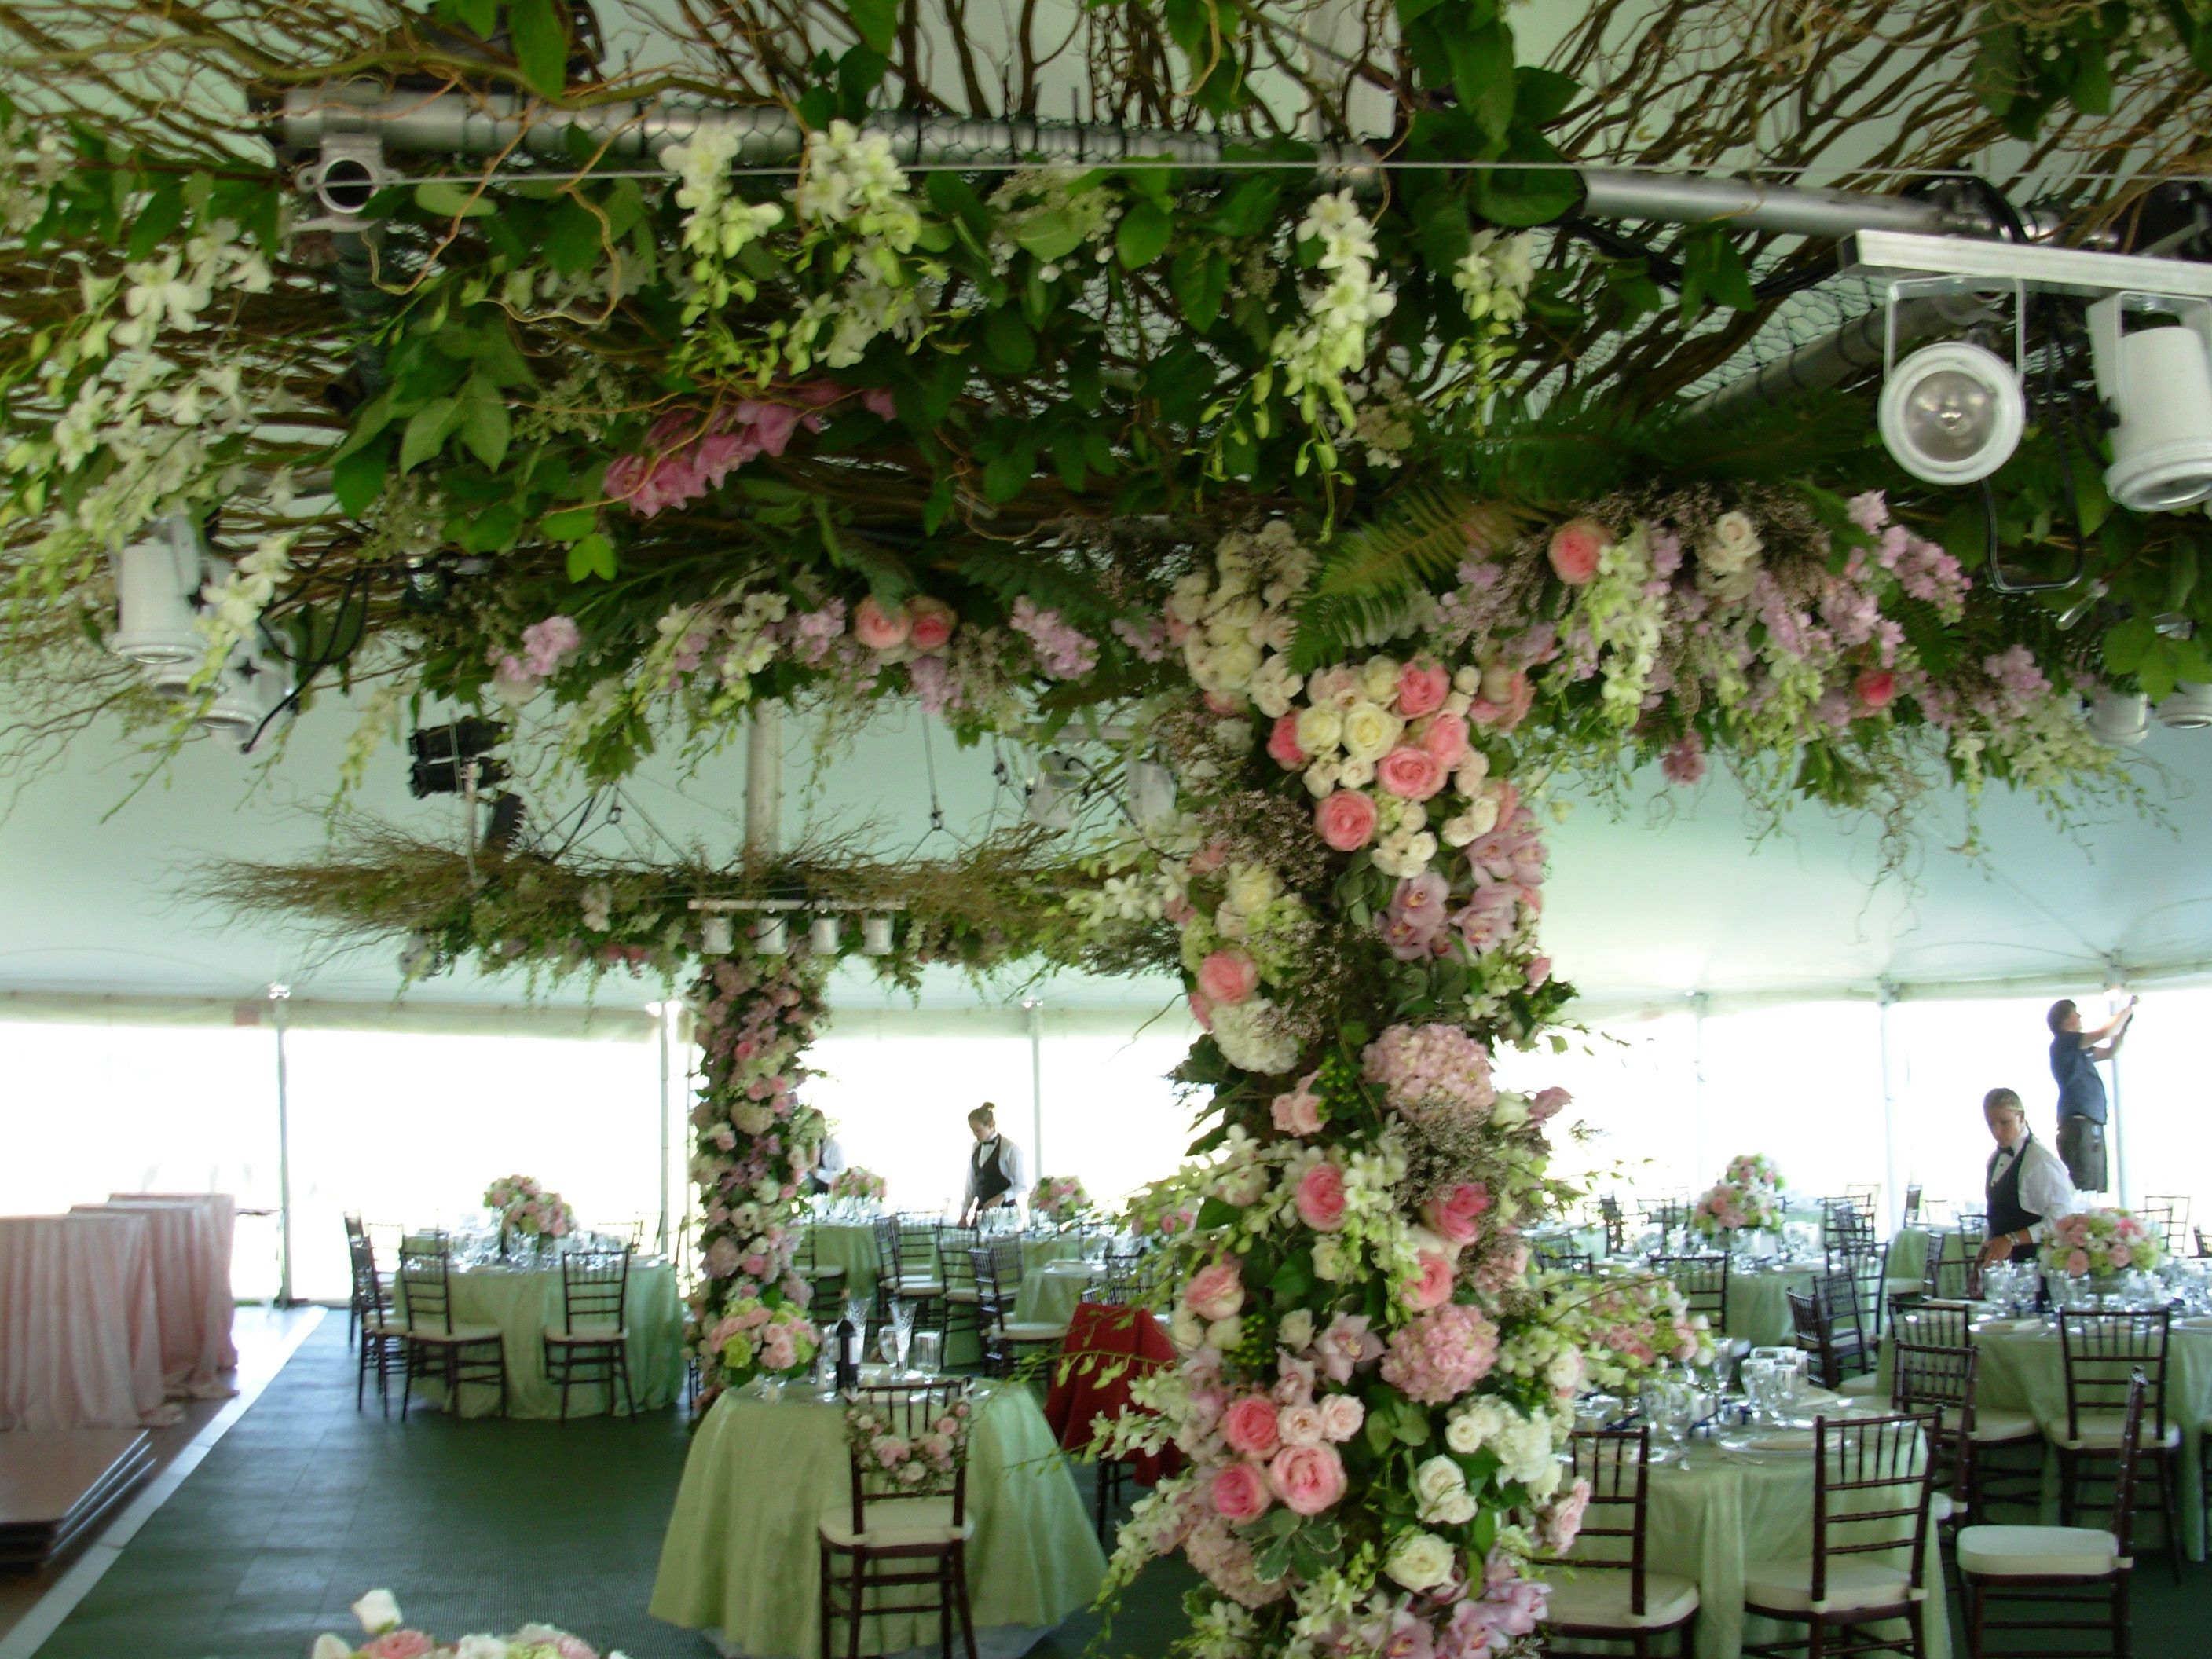 Pin By Seacoast Science Center On Weddings At The Seacoast